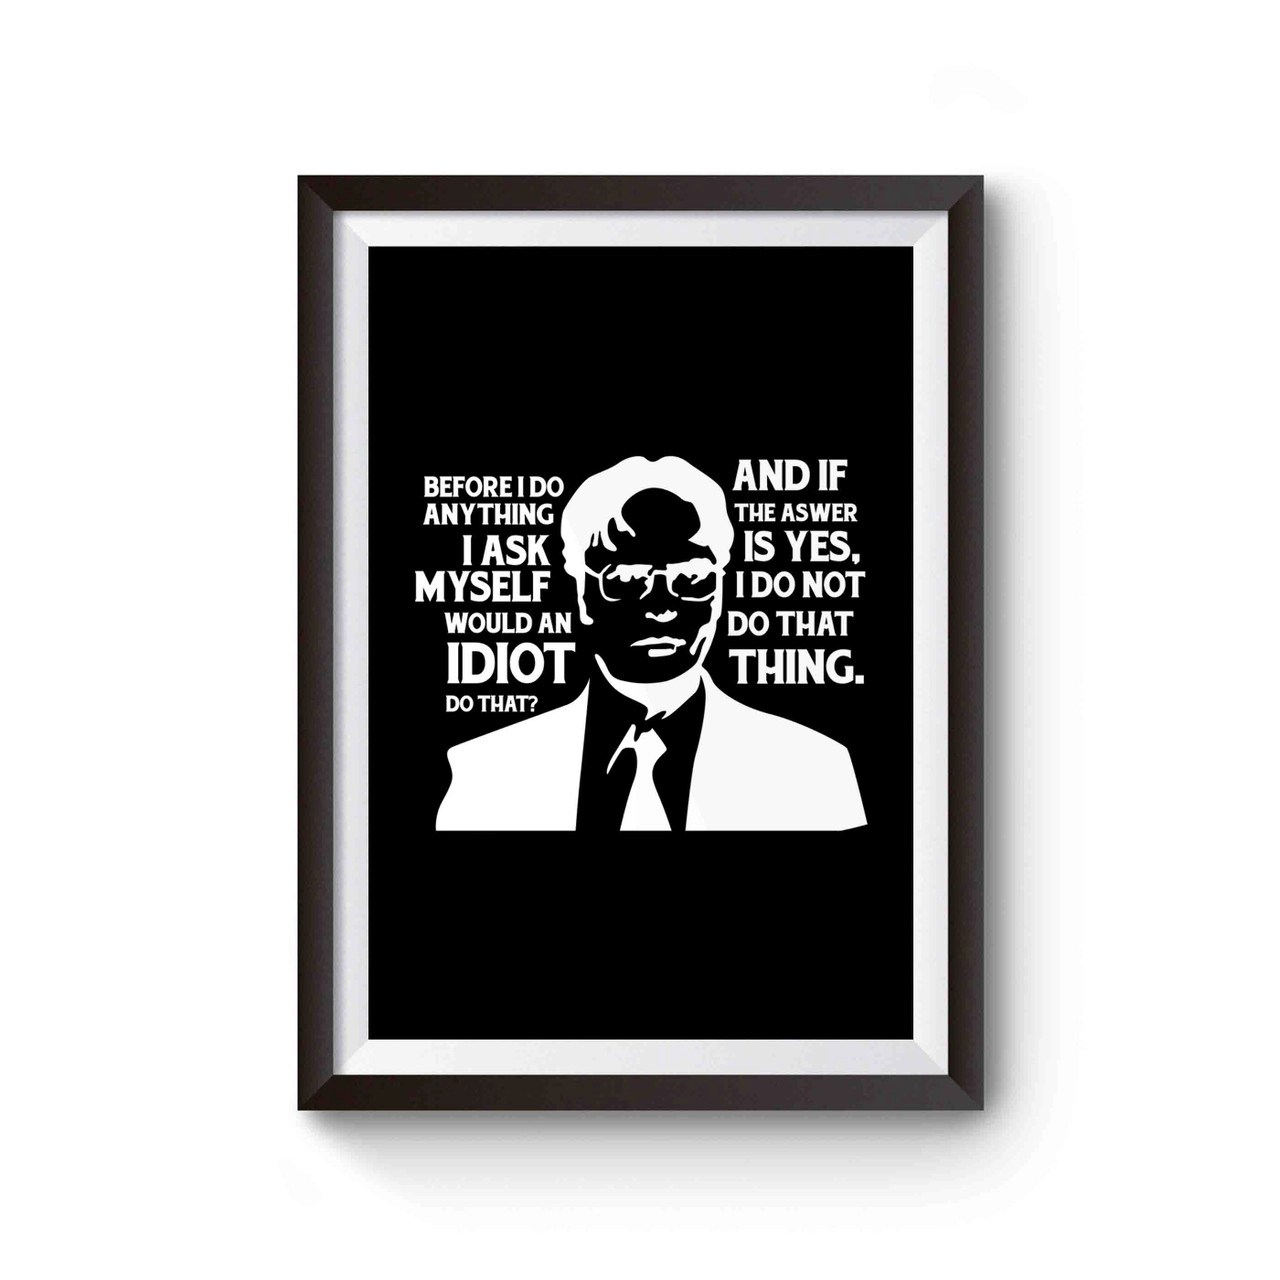 dwight schrute idiot quote poster